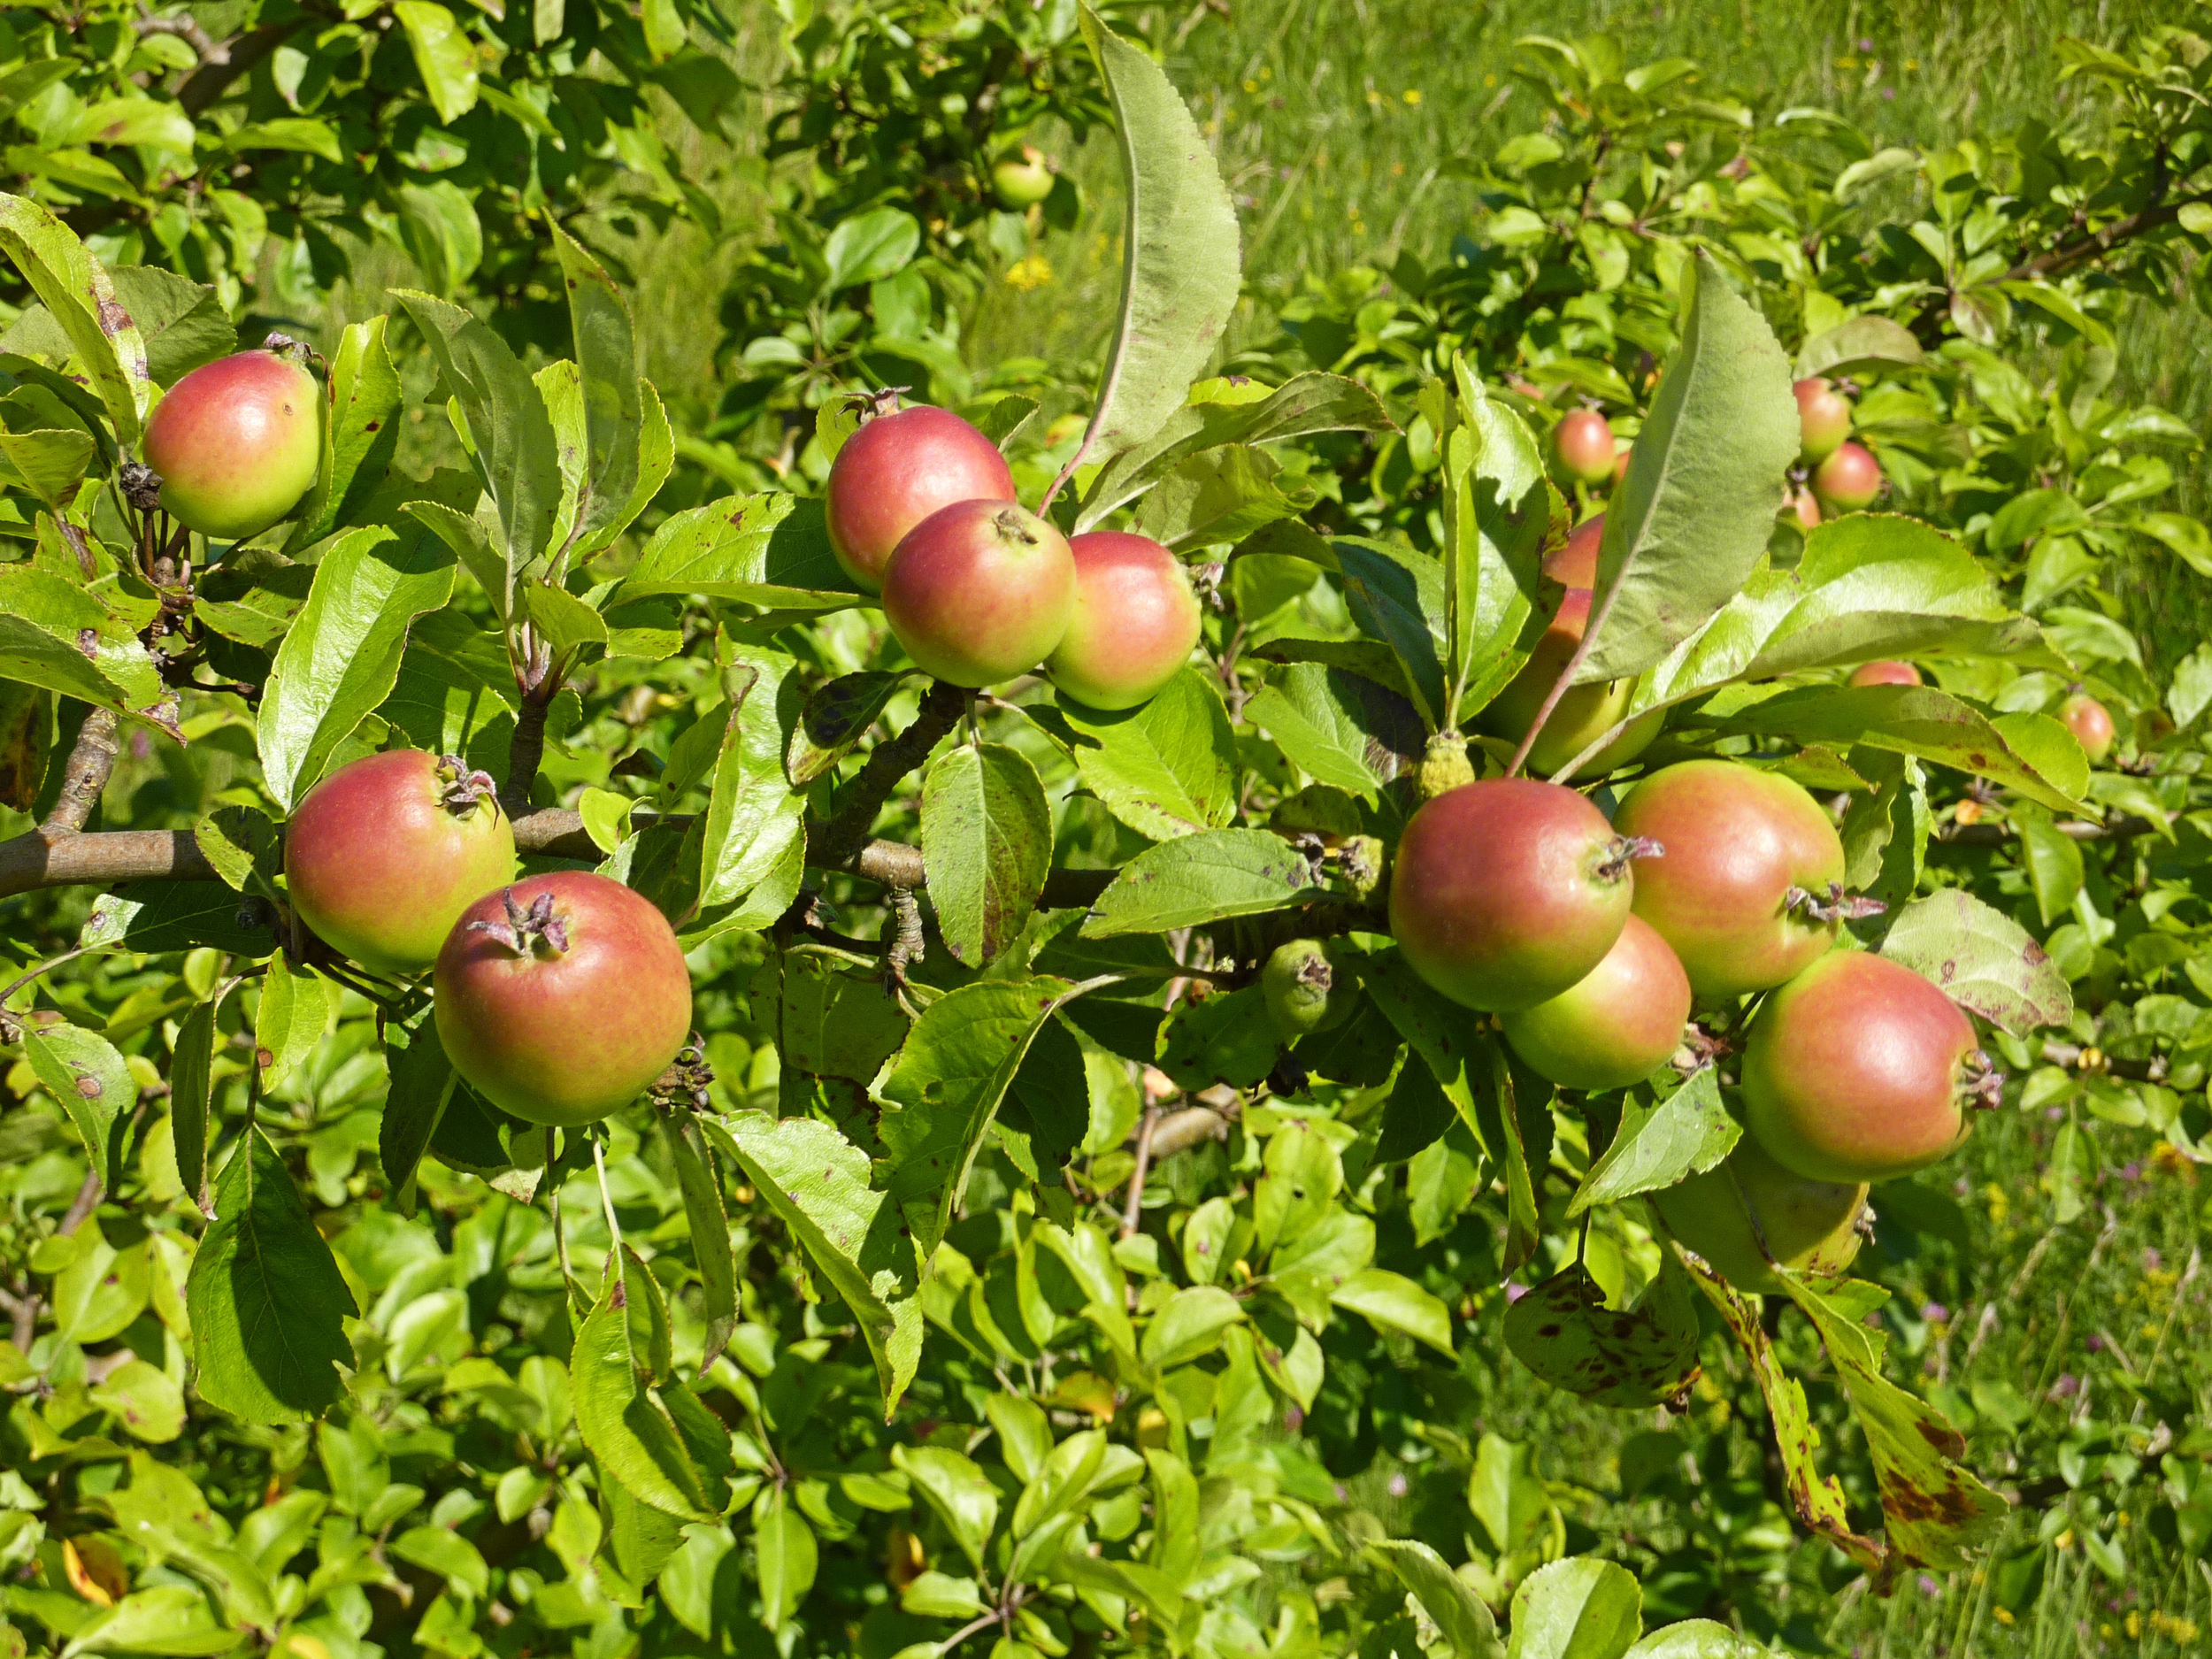 Crab apples are good for making jelly